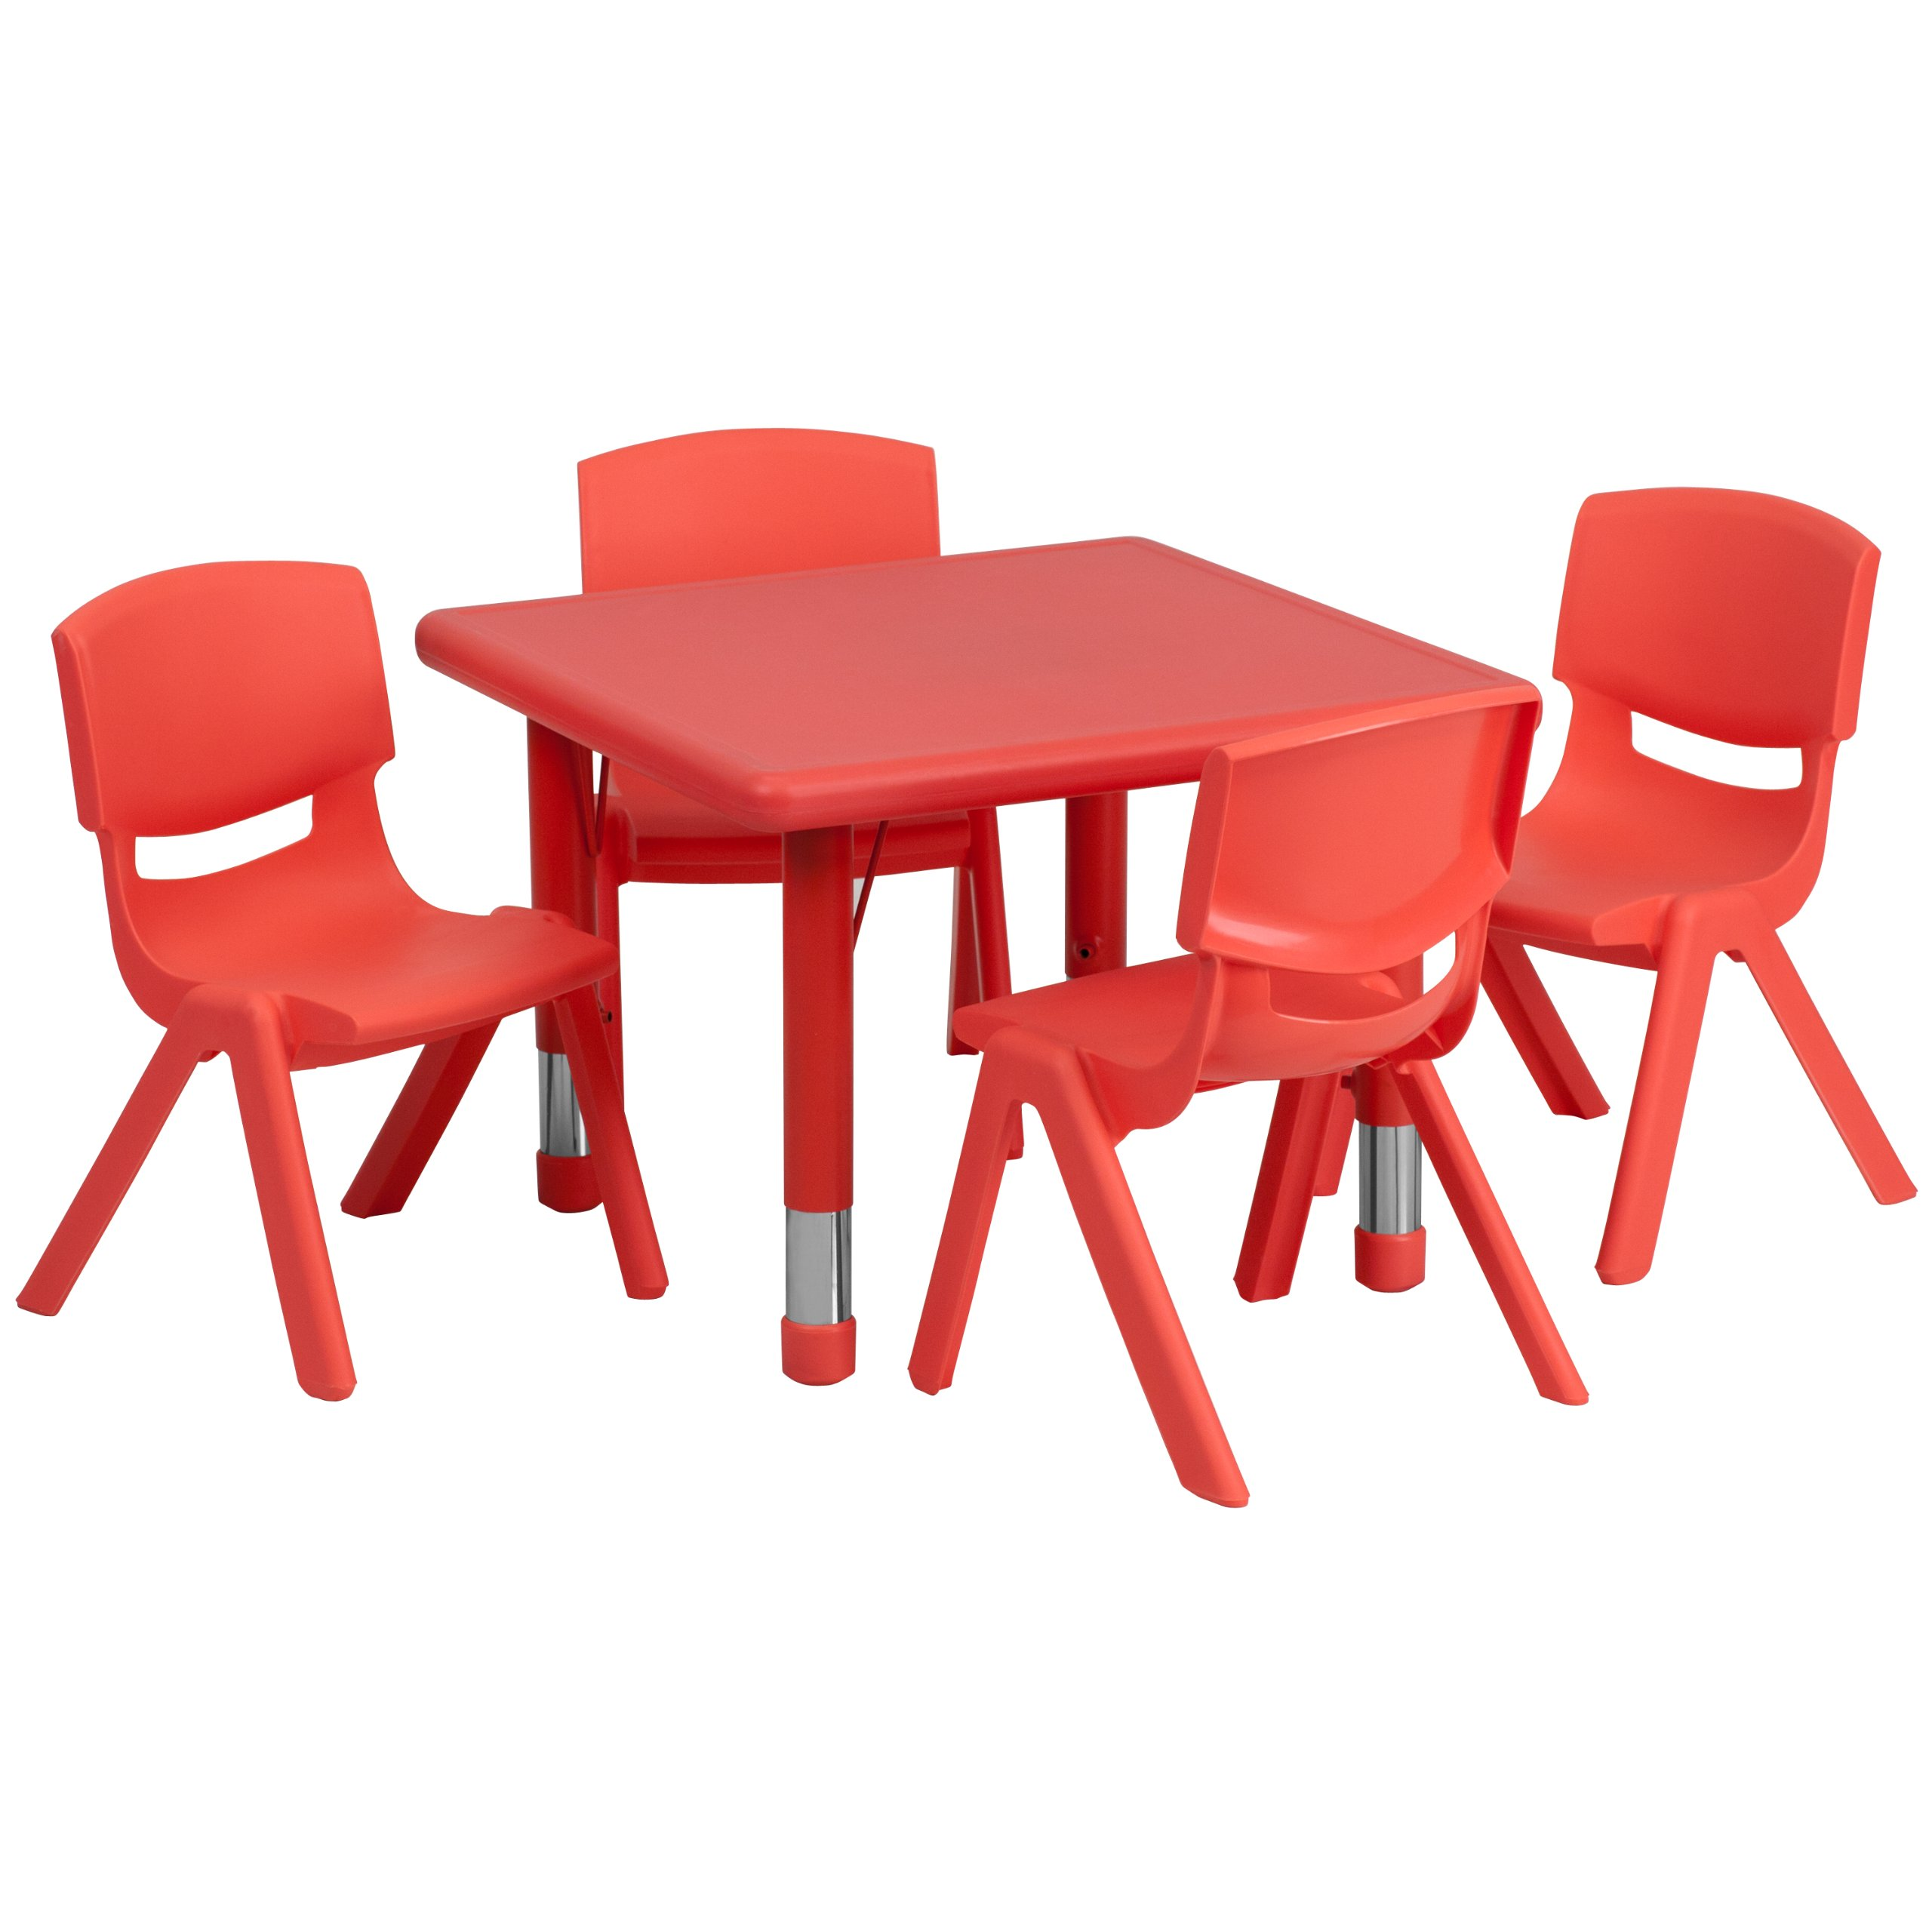 Flash Furniture 24'' Square Red Plastic Height Adjustable Activity Table Set with 4 Chairs by Flash Furniture (Image #1)